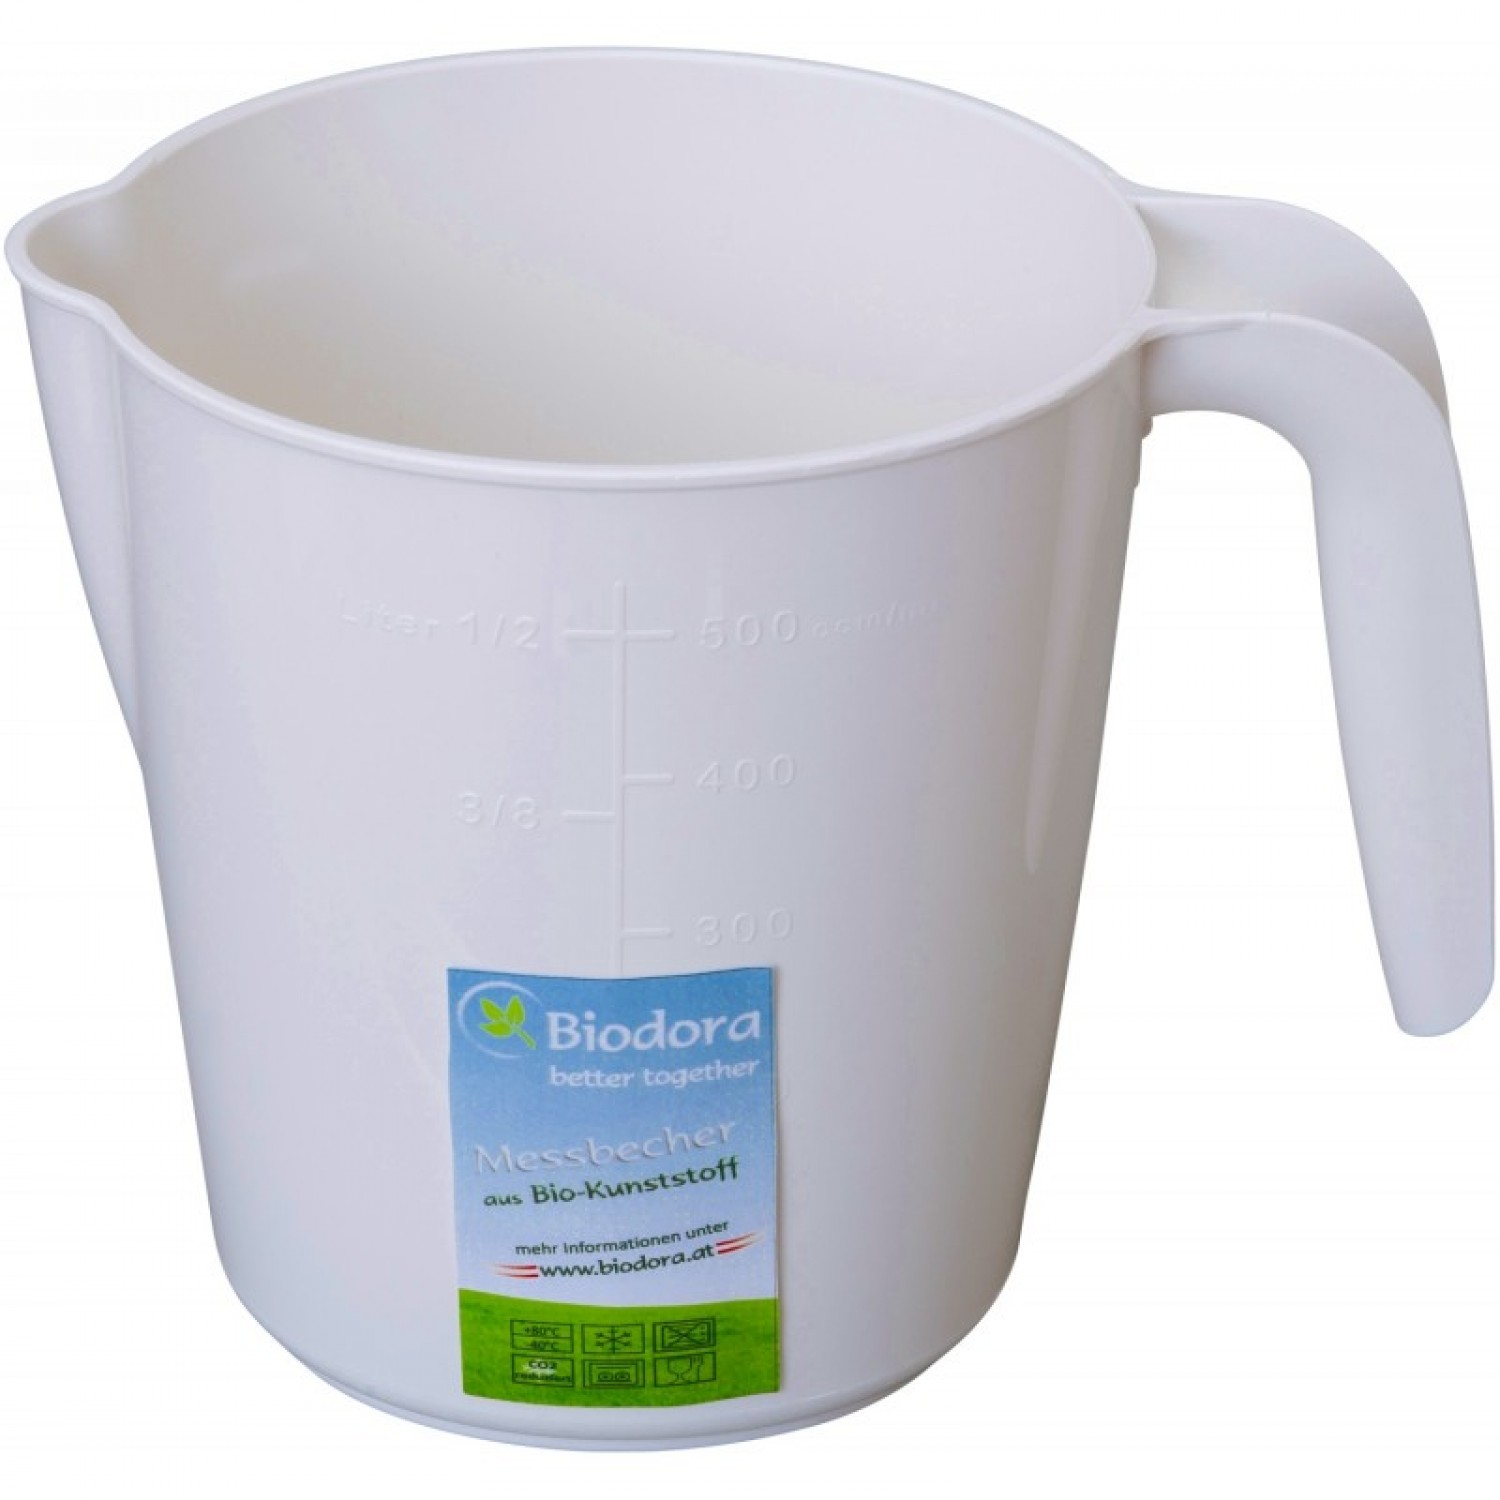 Measuring Cup 1 L of bioplastics | Biodora